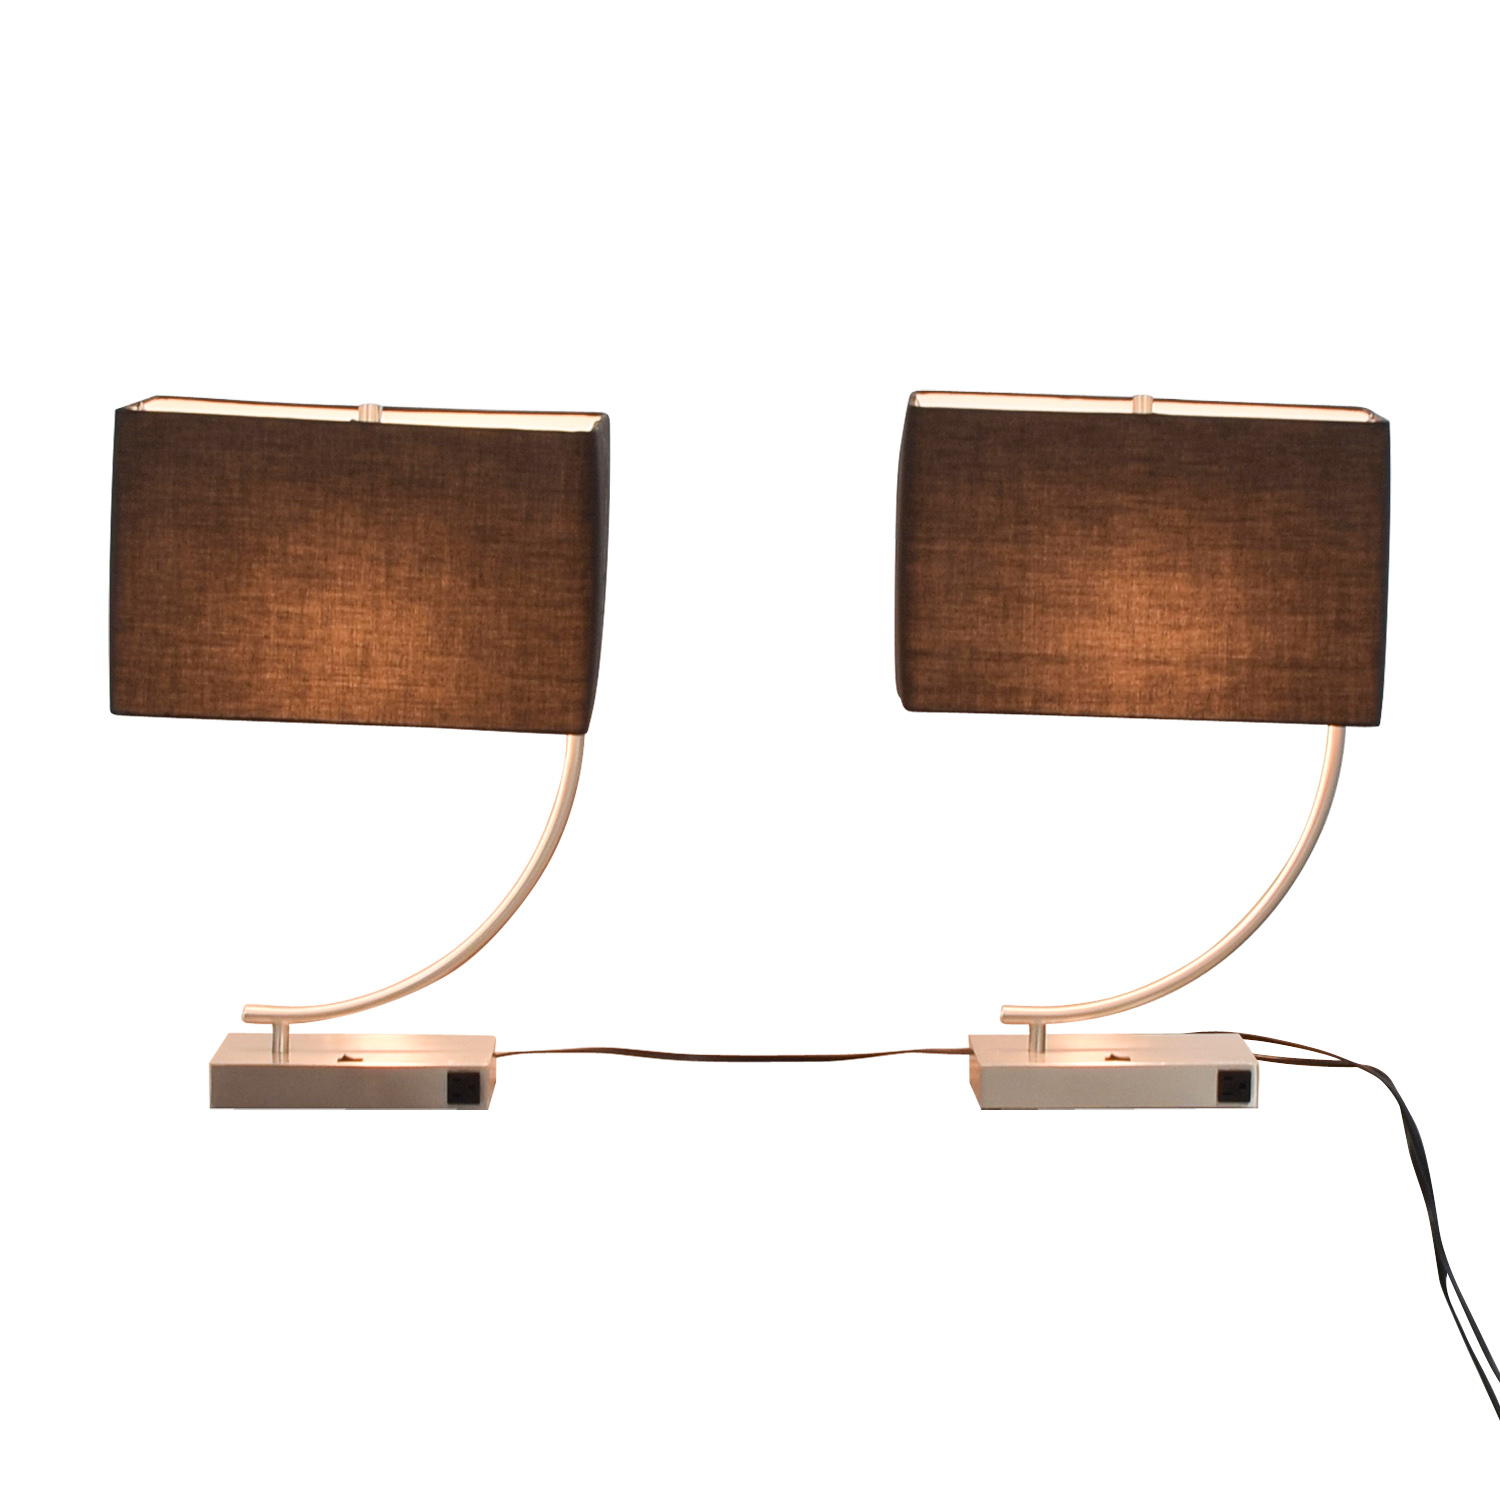 buy Coaster Furniture Lamp Nickel Table Lamps Coaster Furniture Lamps